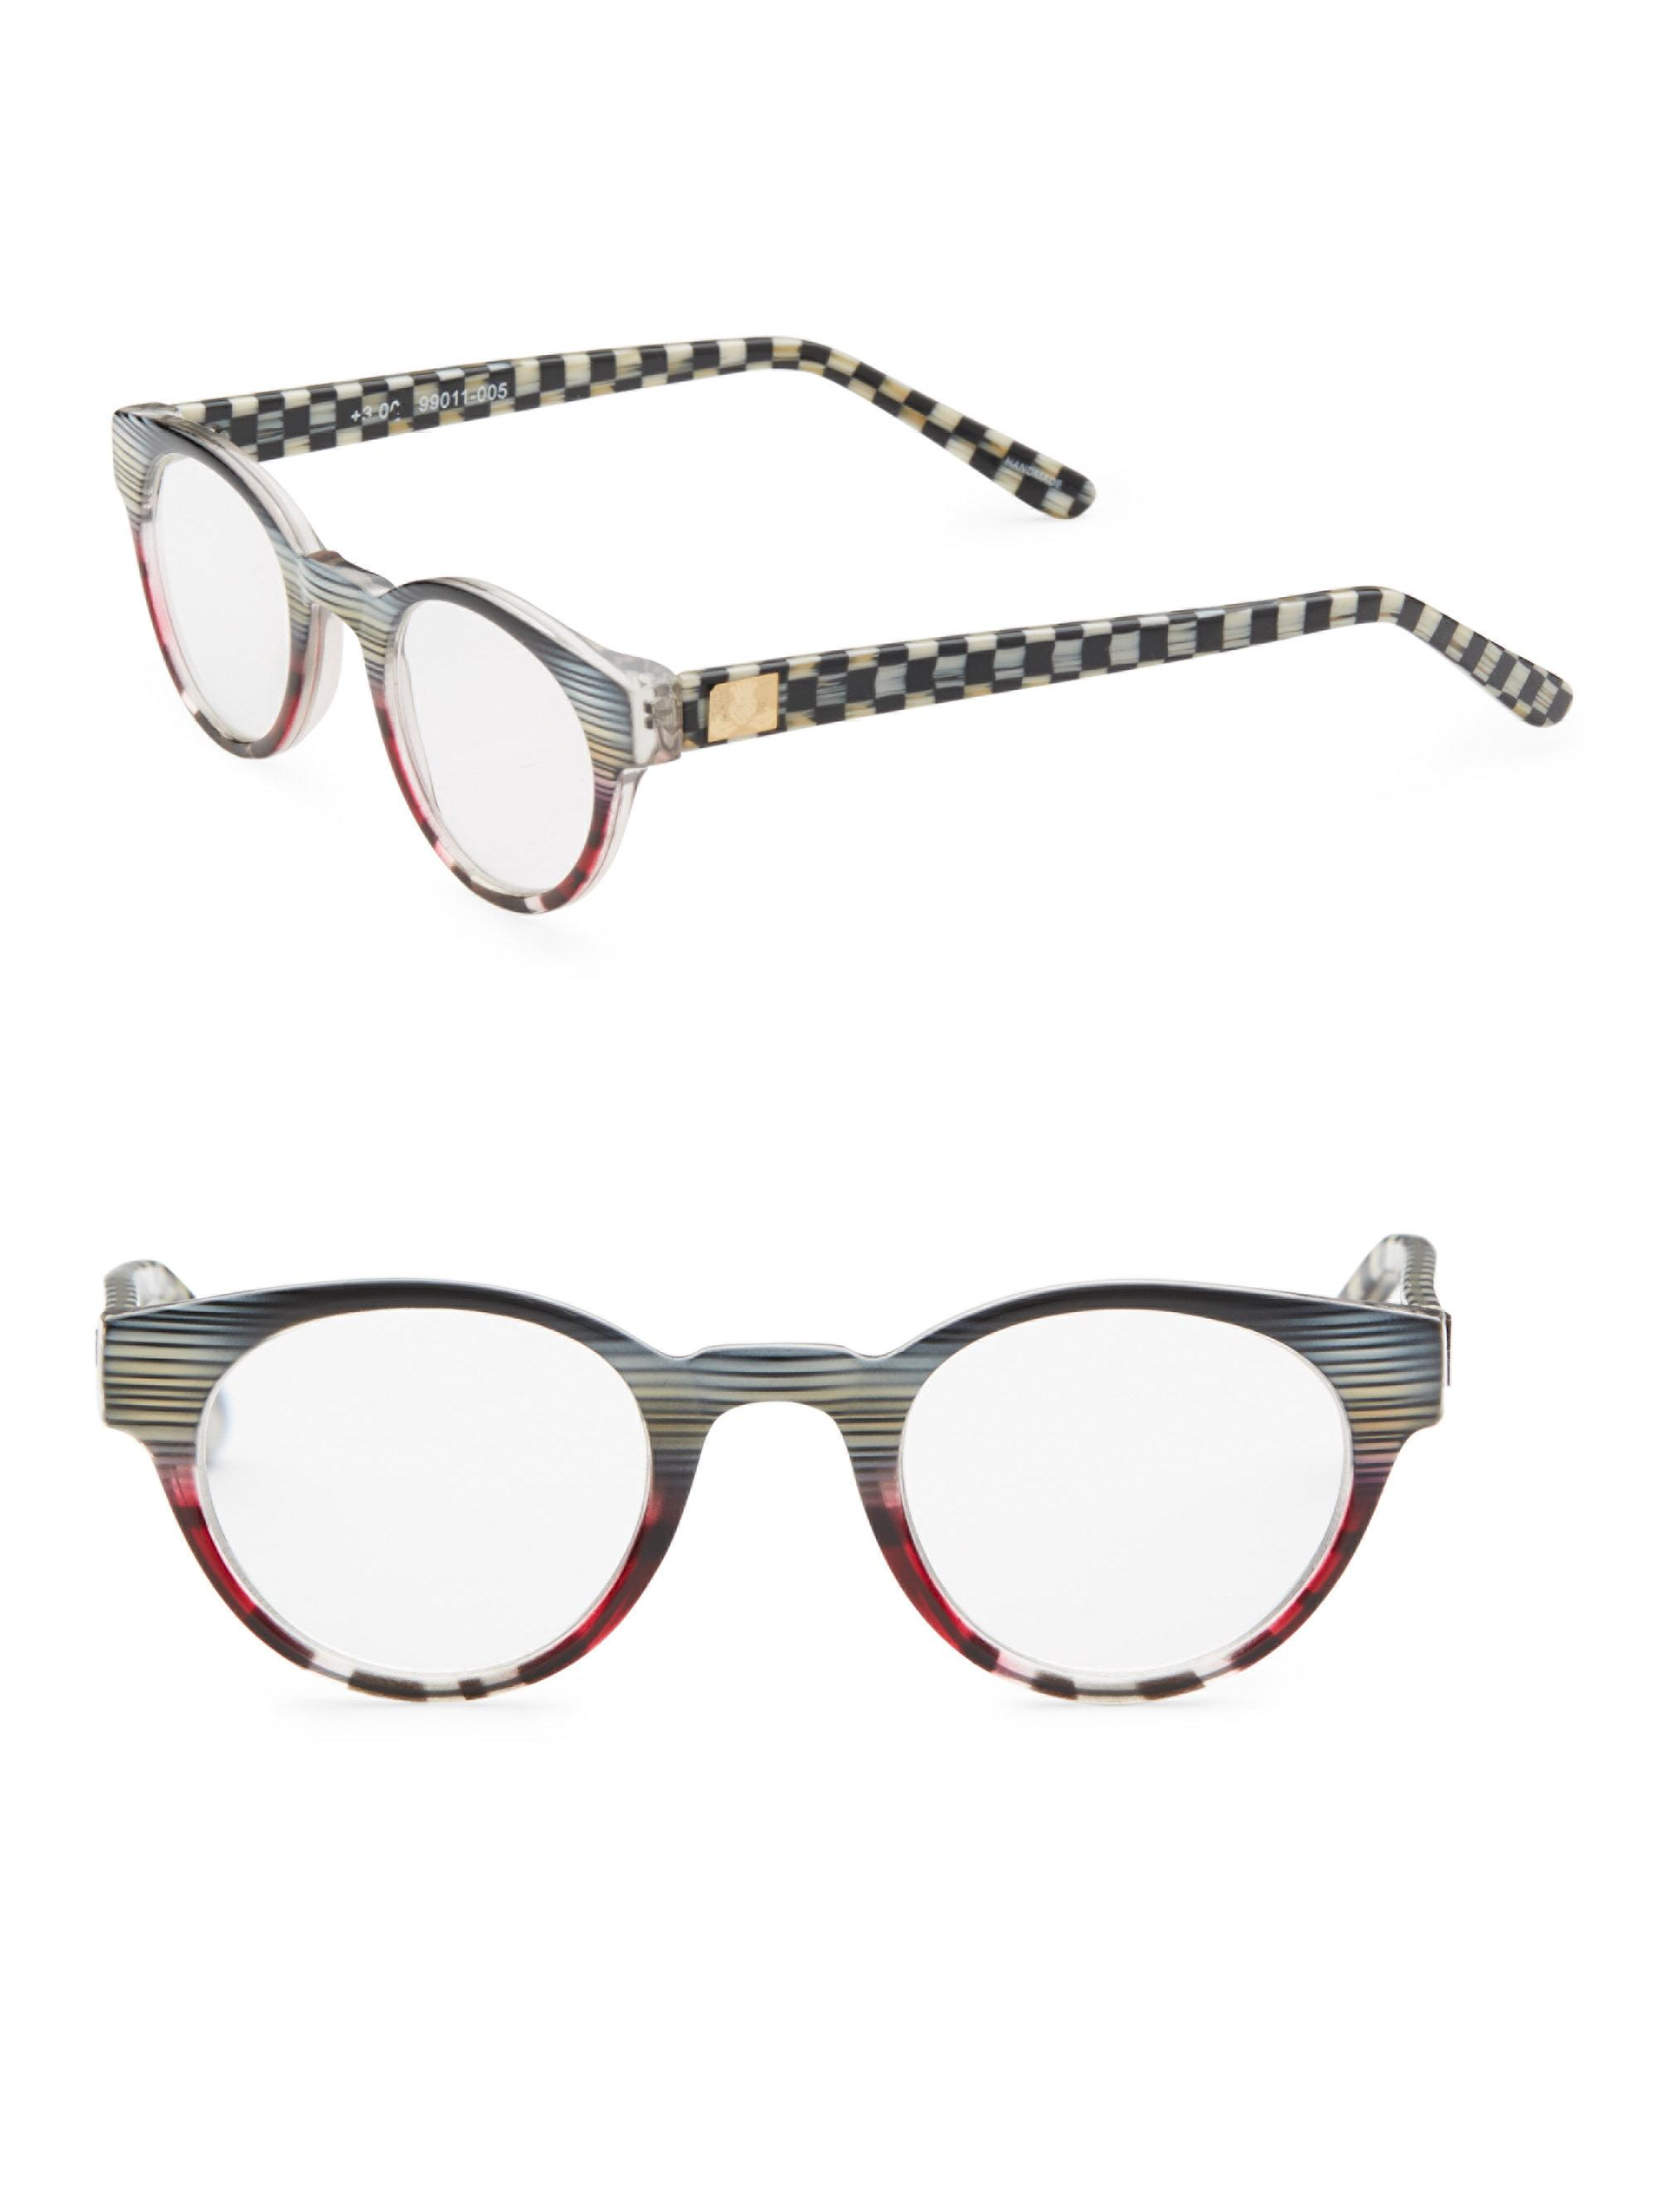 Mackenzie Childs Courtly Reading Glasses Lyst